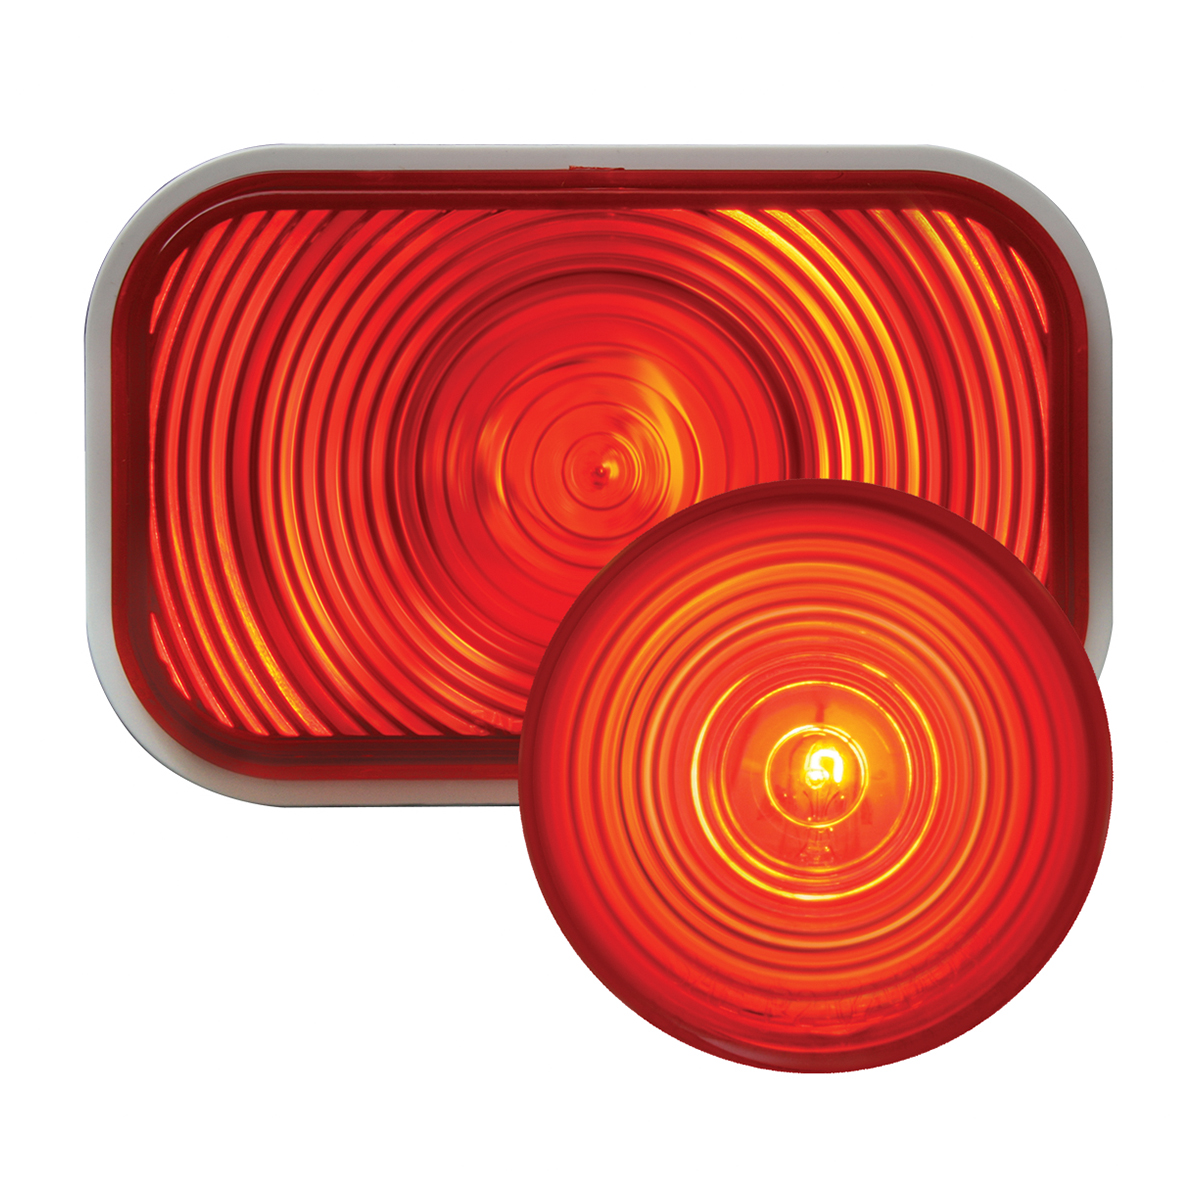 #80785/#80724 Incandescent Flat Light - Red/Red